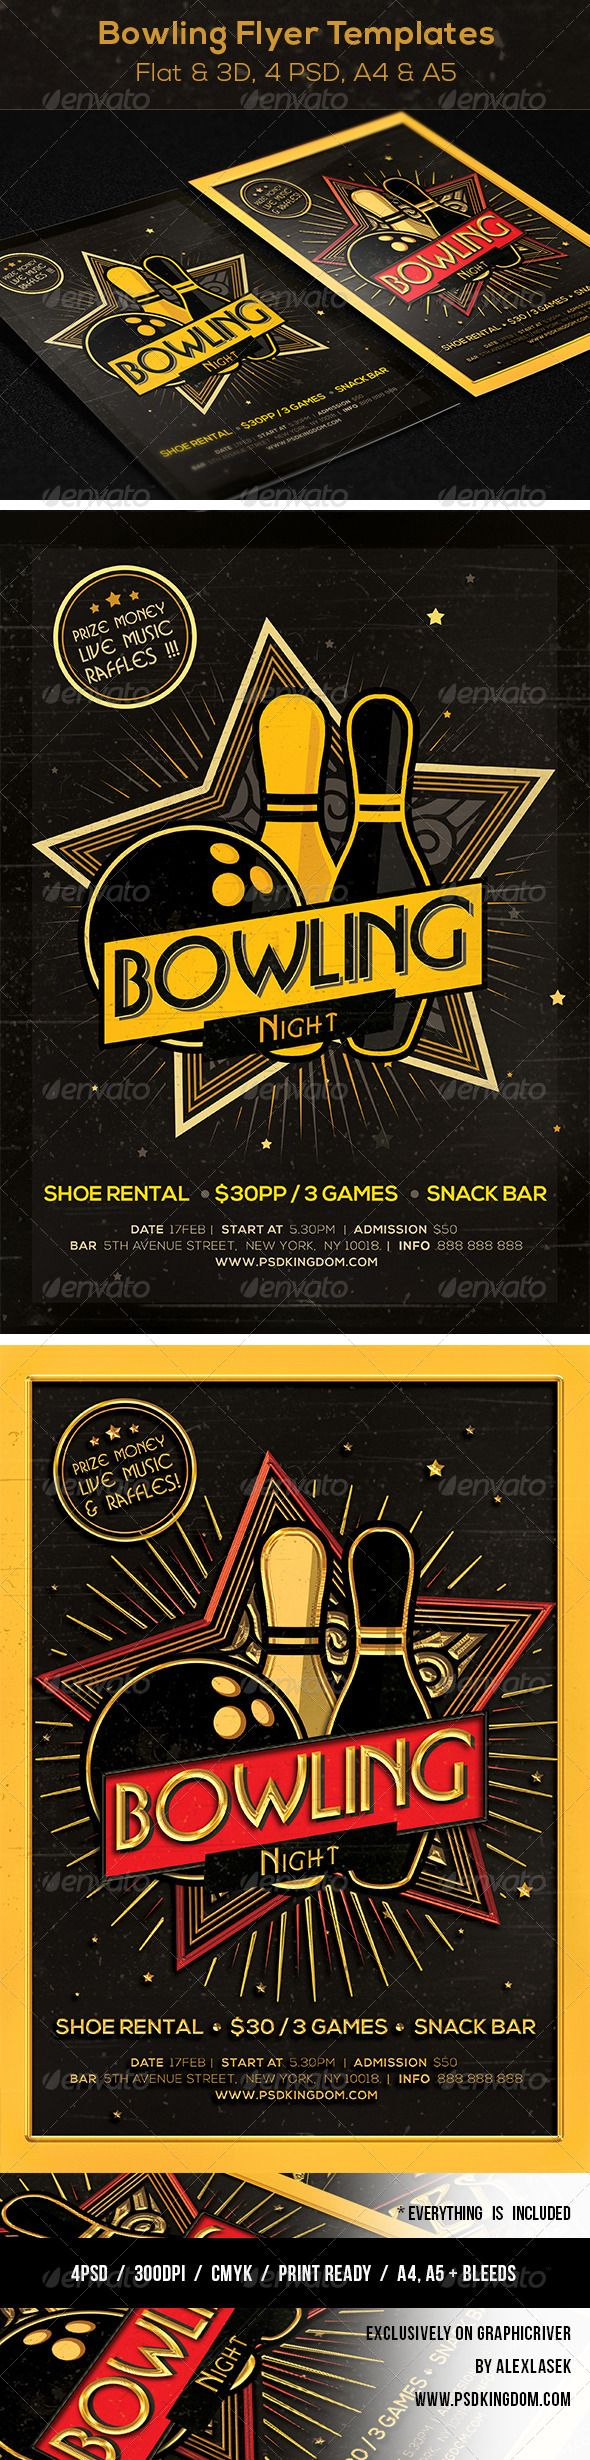 Bowling Magazine Ad, Poster or Flyer - Flat & 3D by Alexlasek Bowling Magazine Ad, Poster or Flyer Templates Flat & 3D 4PSD files:A4 and A5Please dont forget to rate and Follow me please! Des